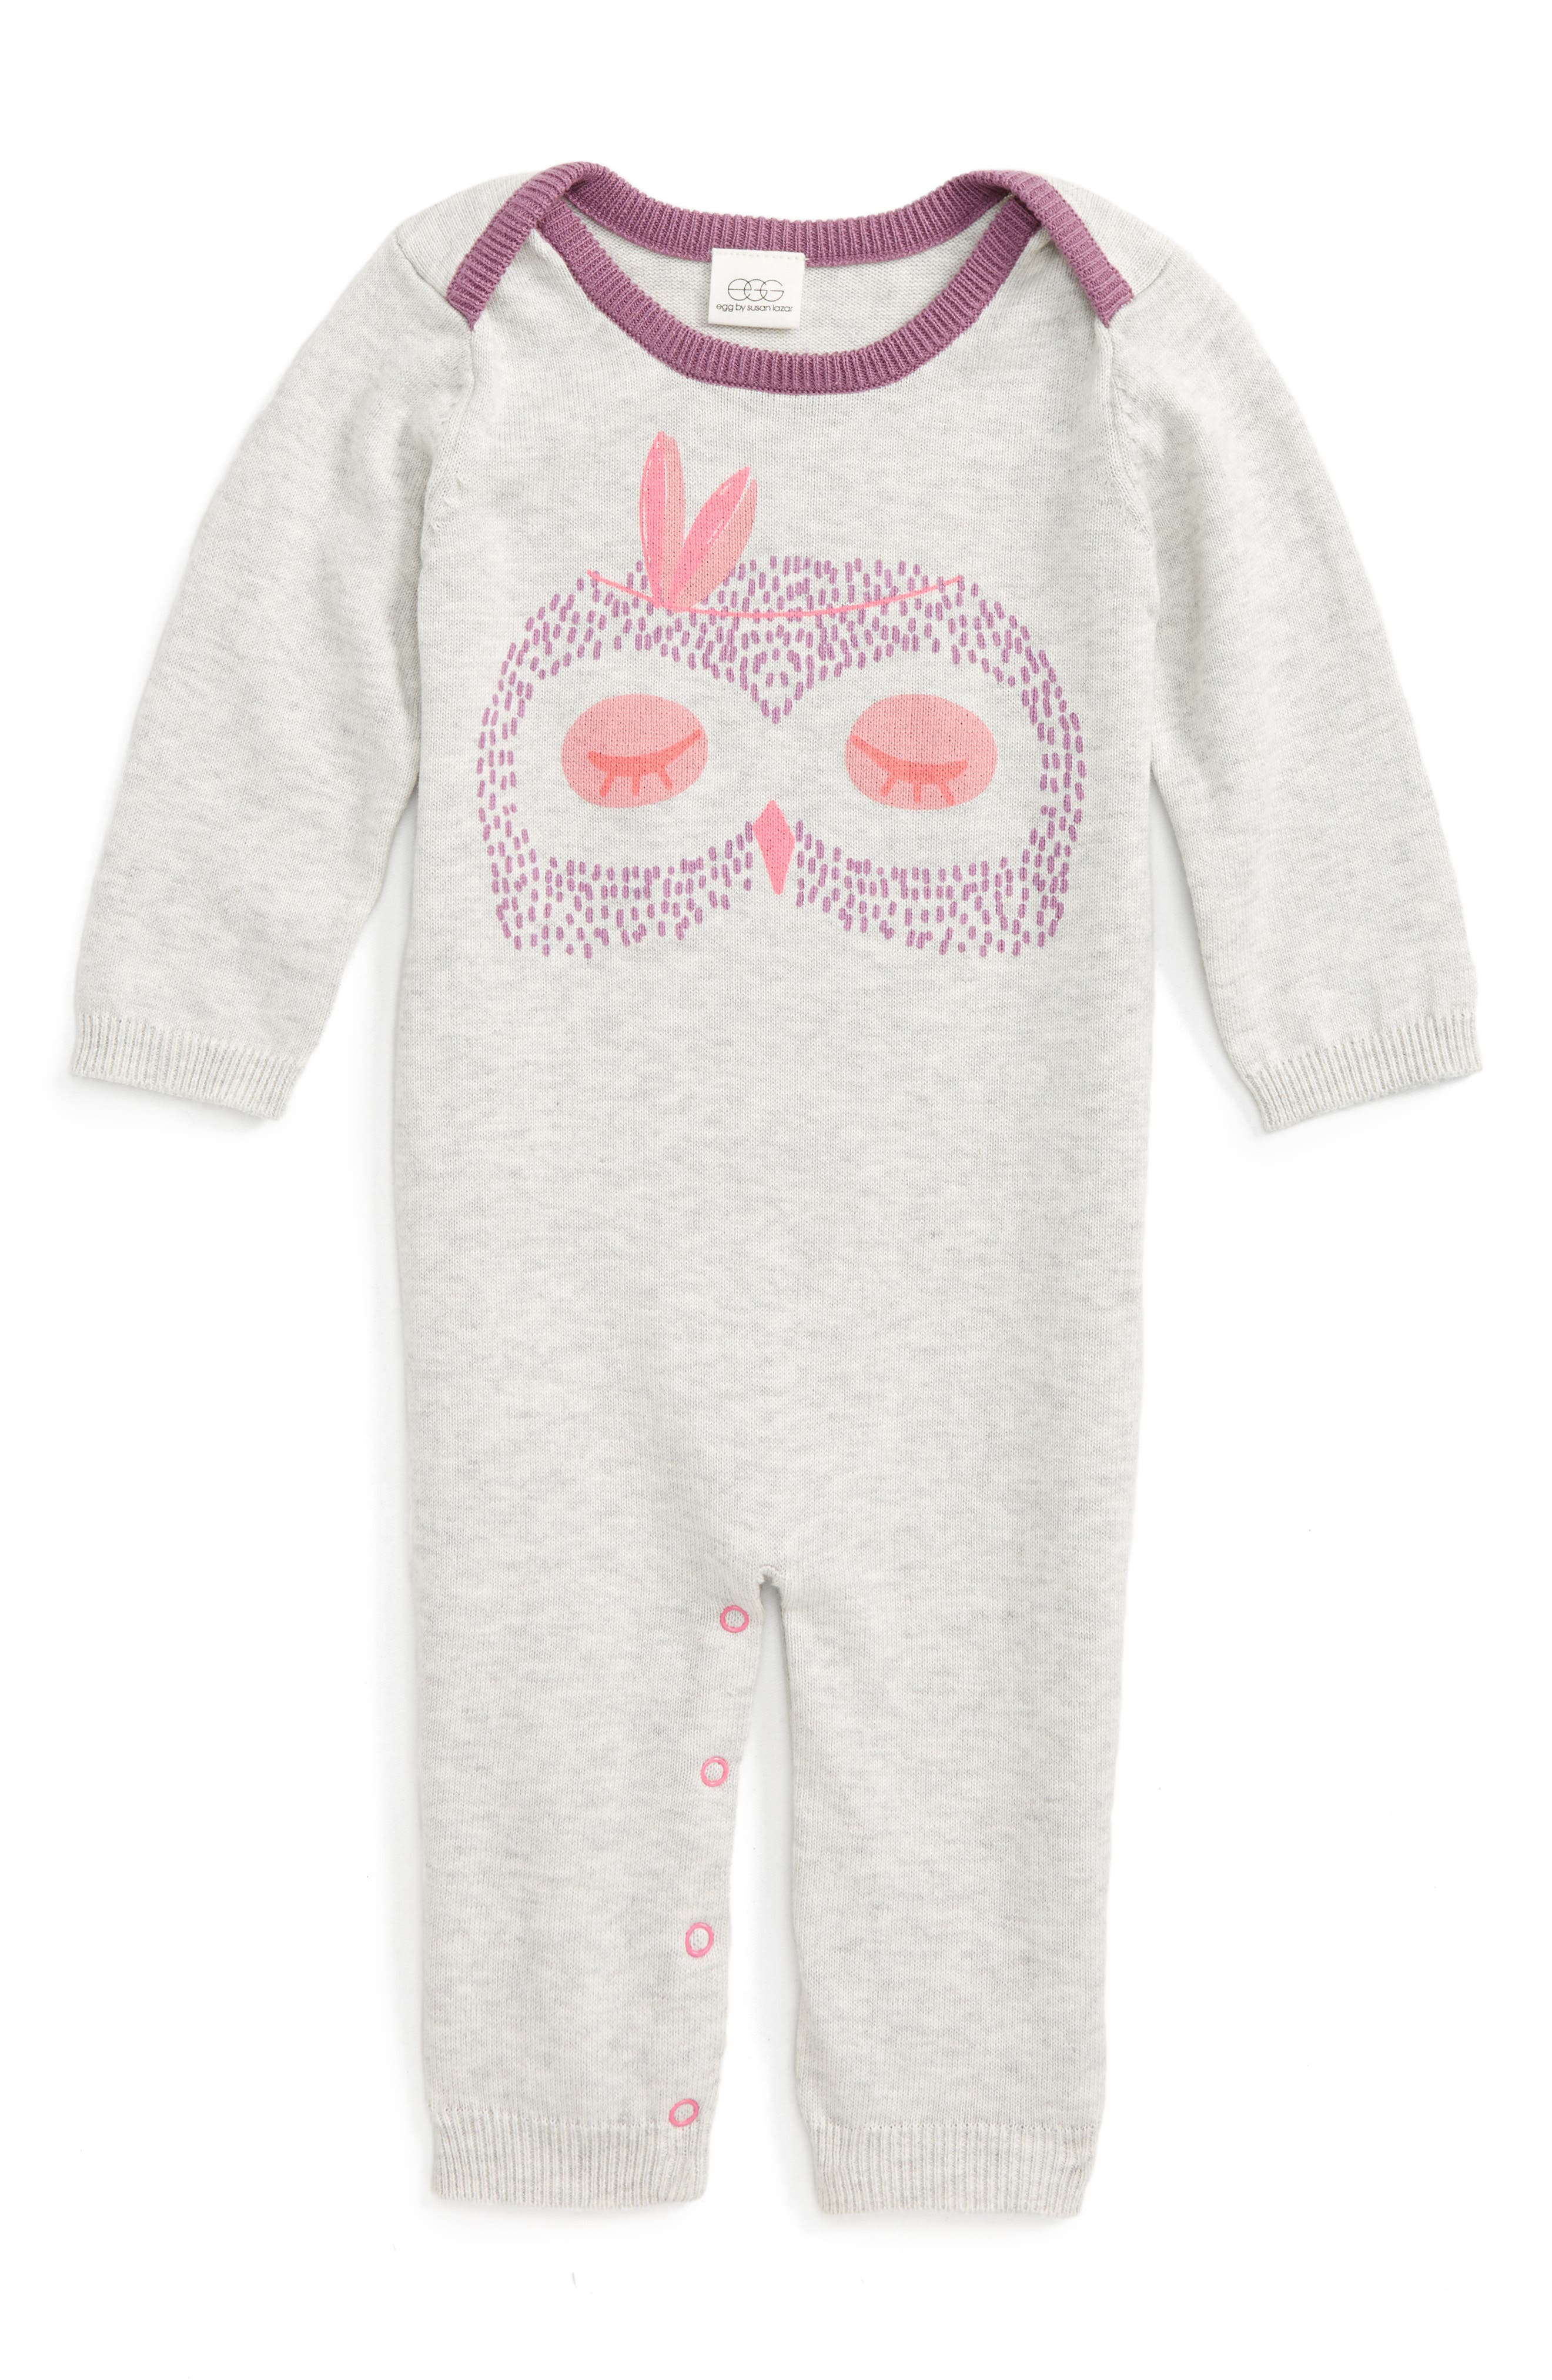 Alternate Image 1 Selected - egg by susan lazar Critter Romper (Baby Girls)